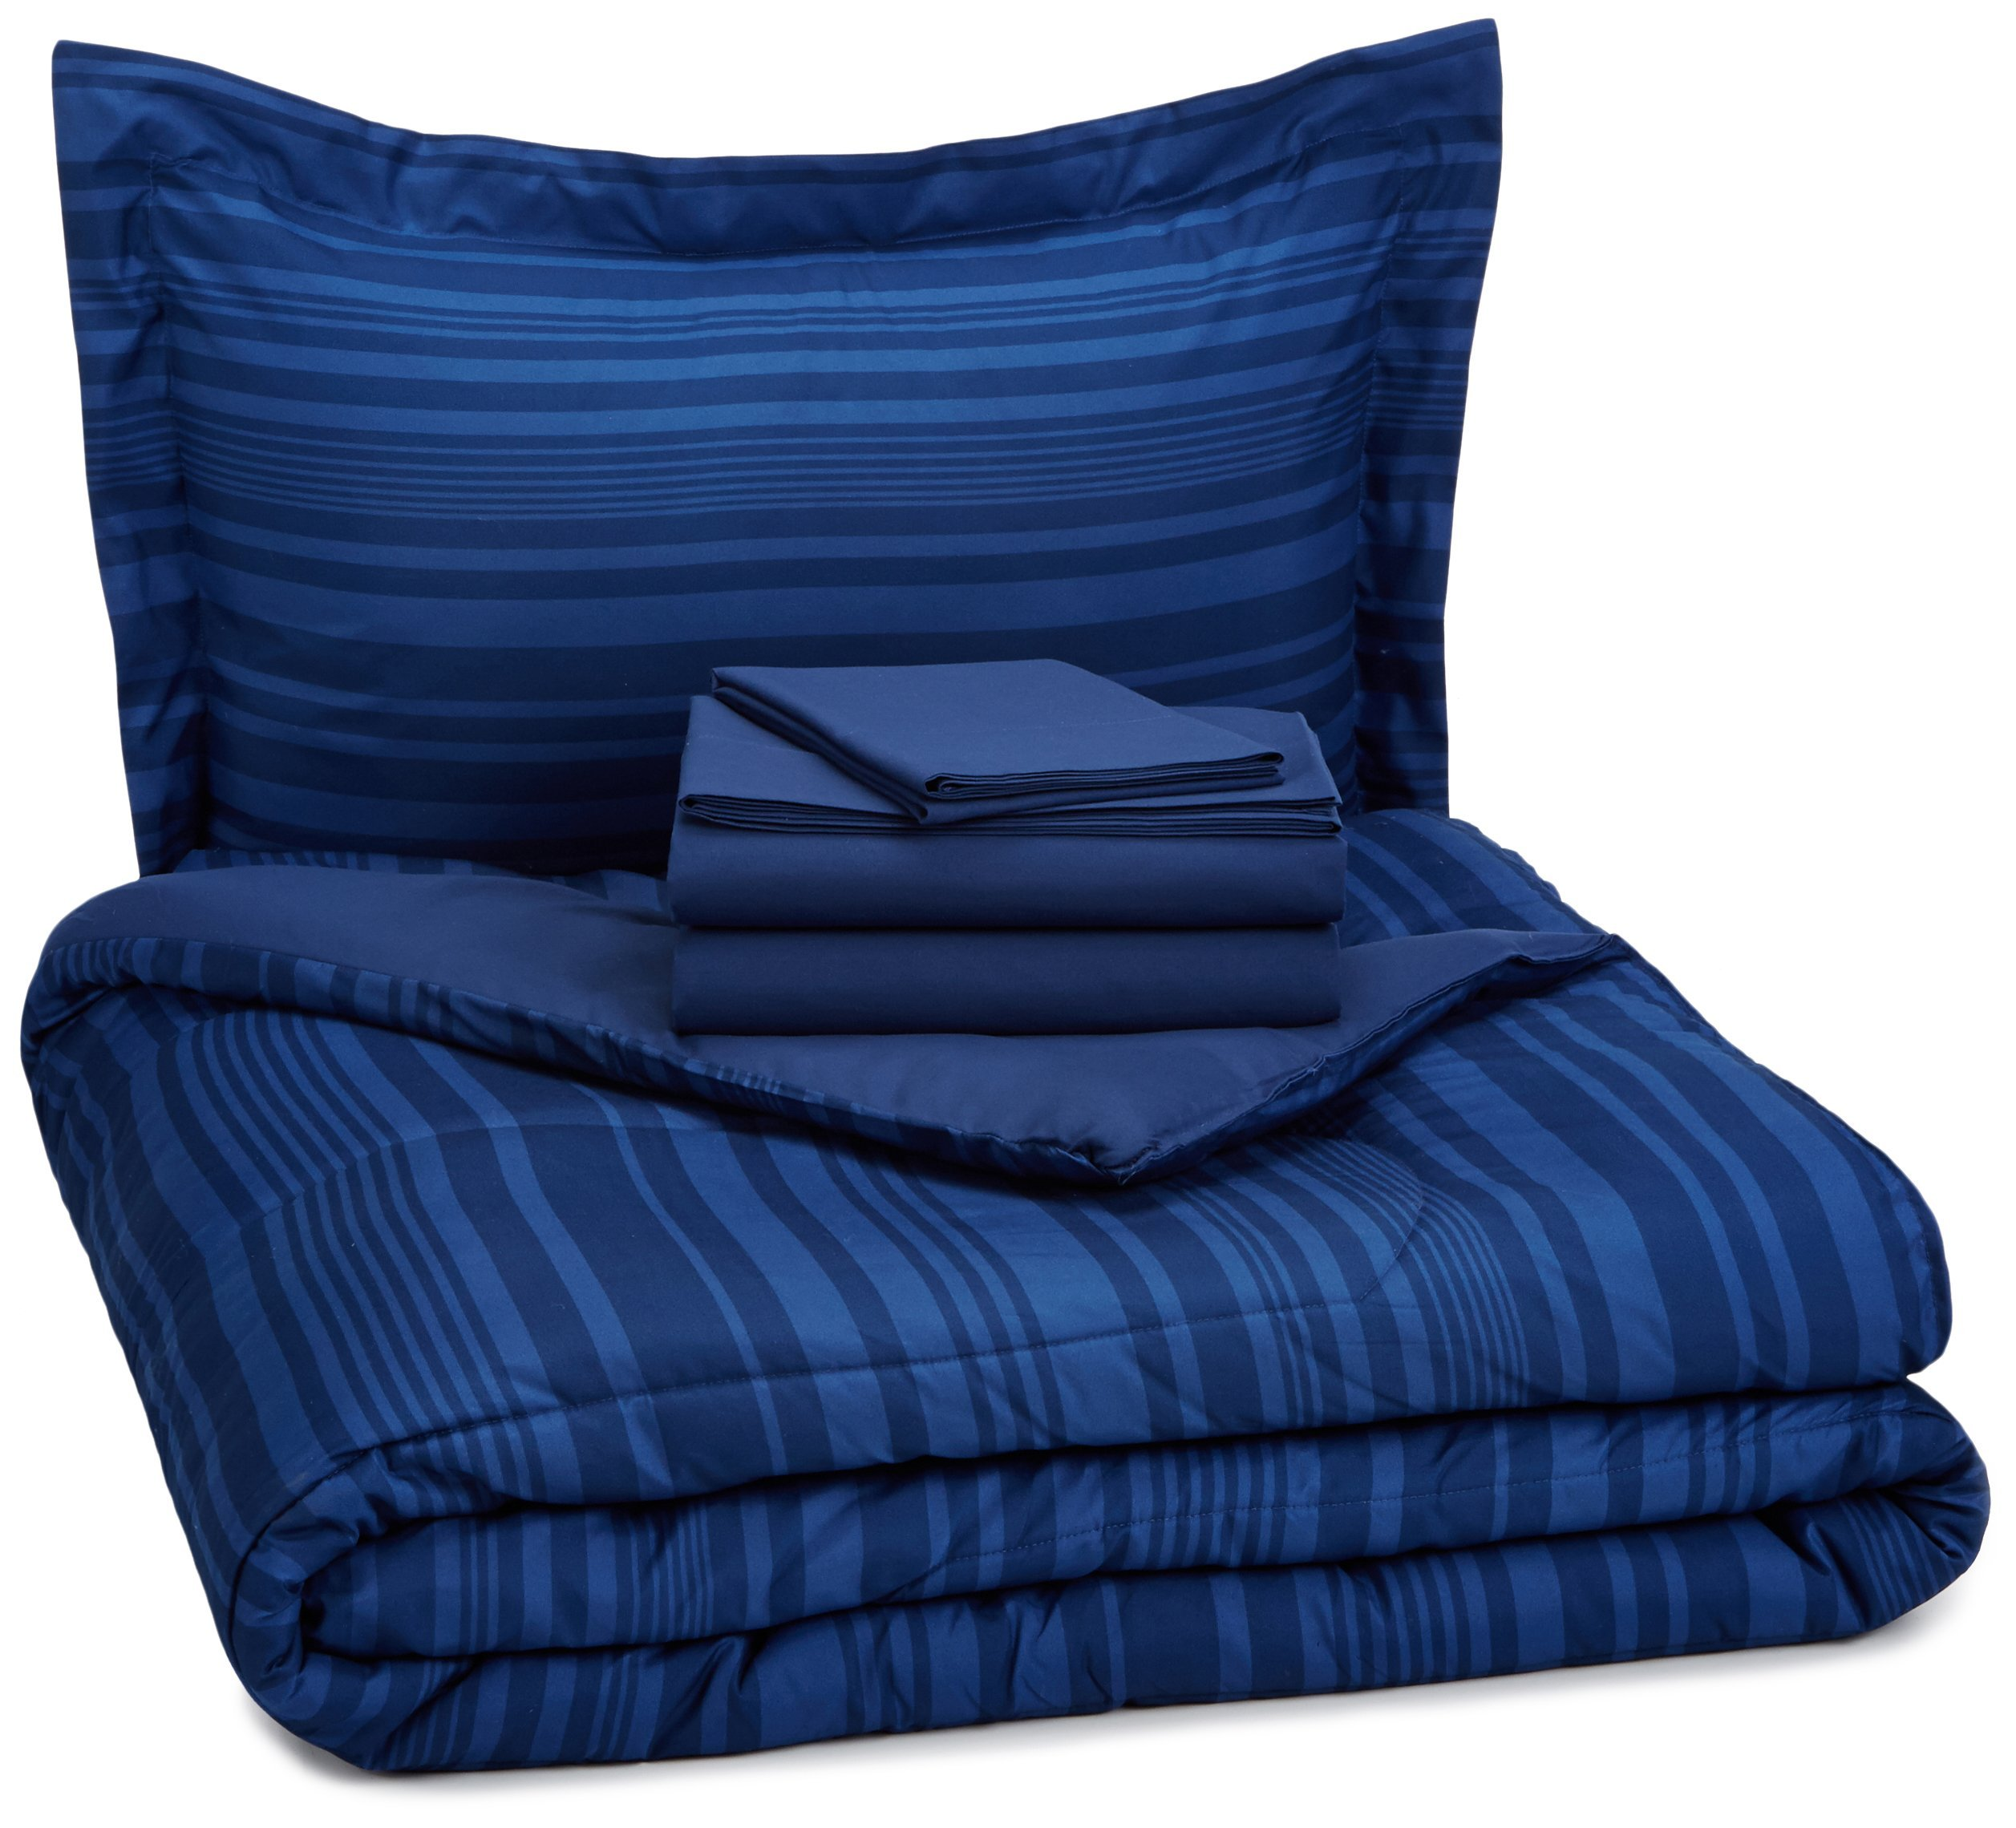 AmazonBasics 5-Piece Bed-In-A-Bag - Twin/Twin Extra Long, Blue Calvin Stripe by AmazonBasics